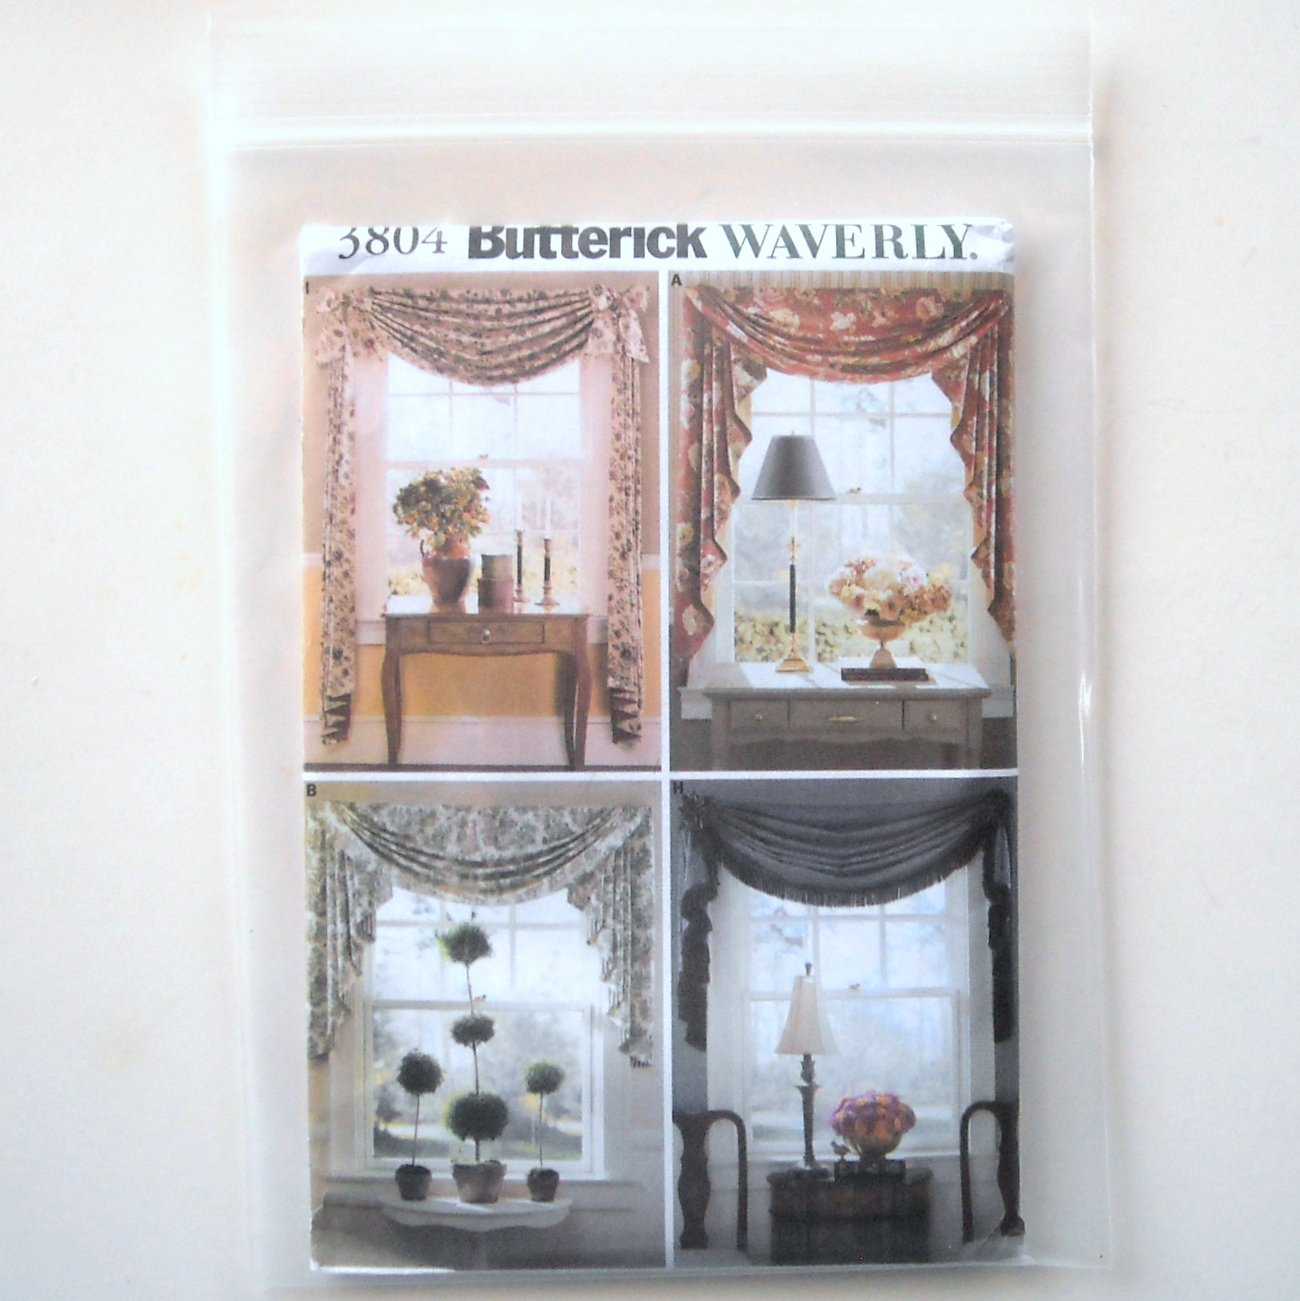 Butterick Pattern B3804 Waverly Window Treatments Swags Jabots